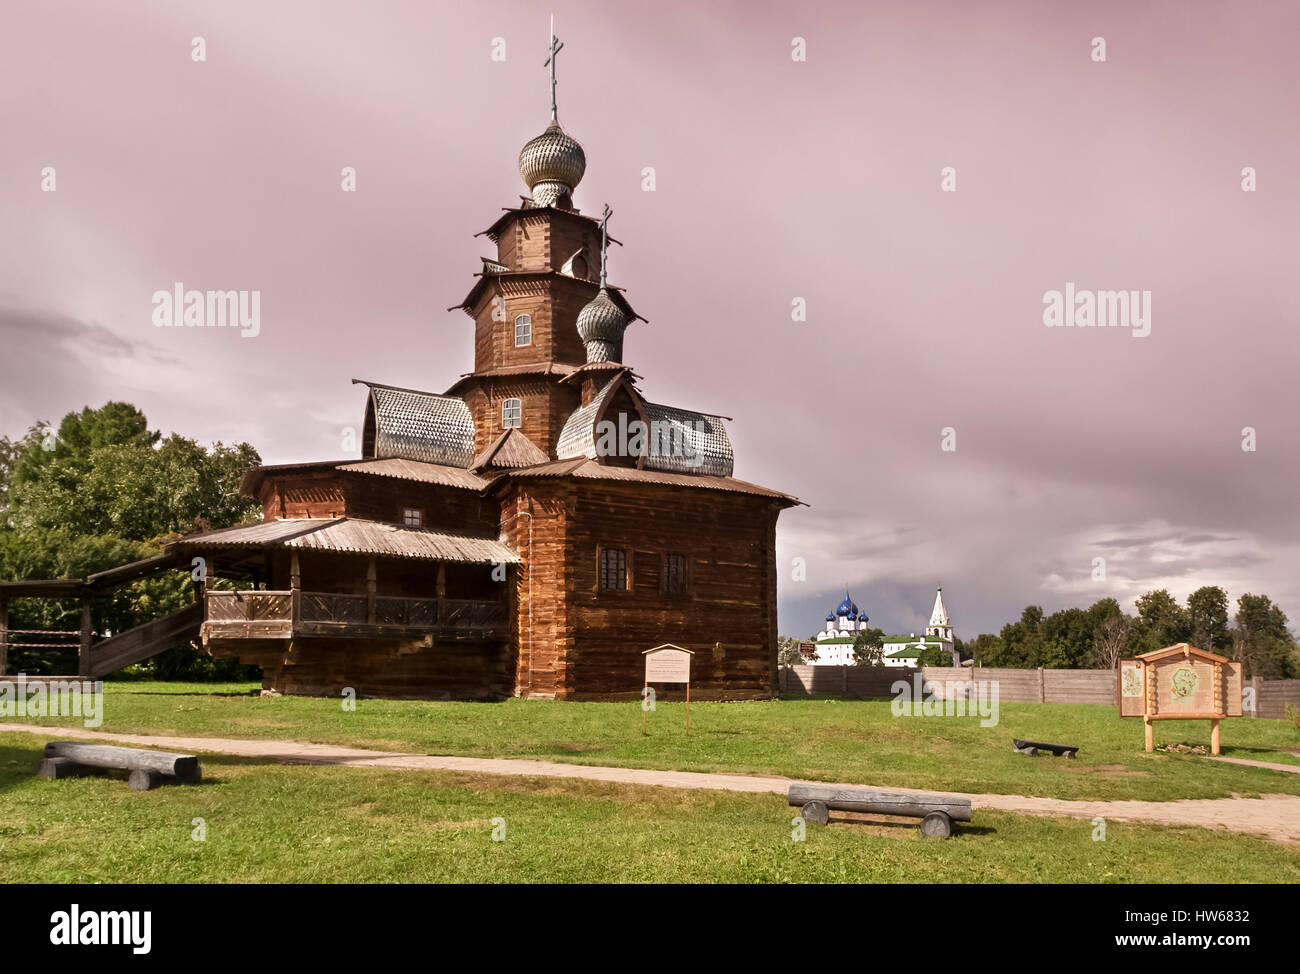 Wooden church in suzdal - Stock Image